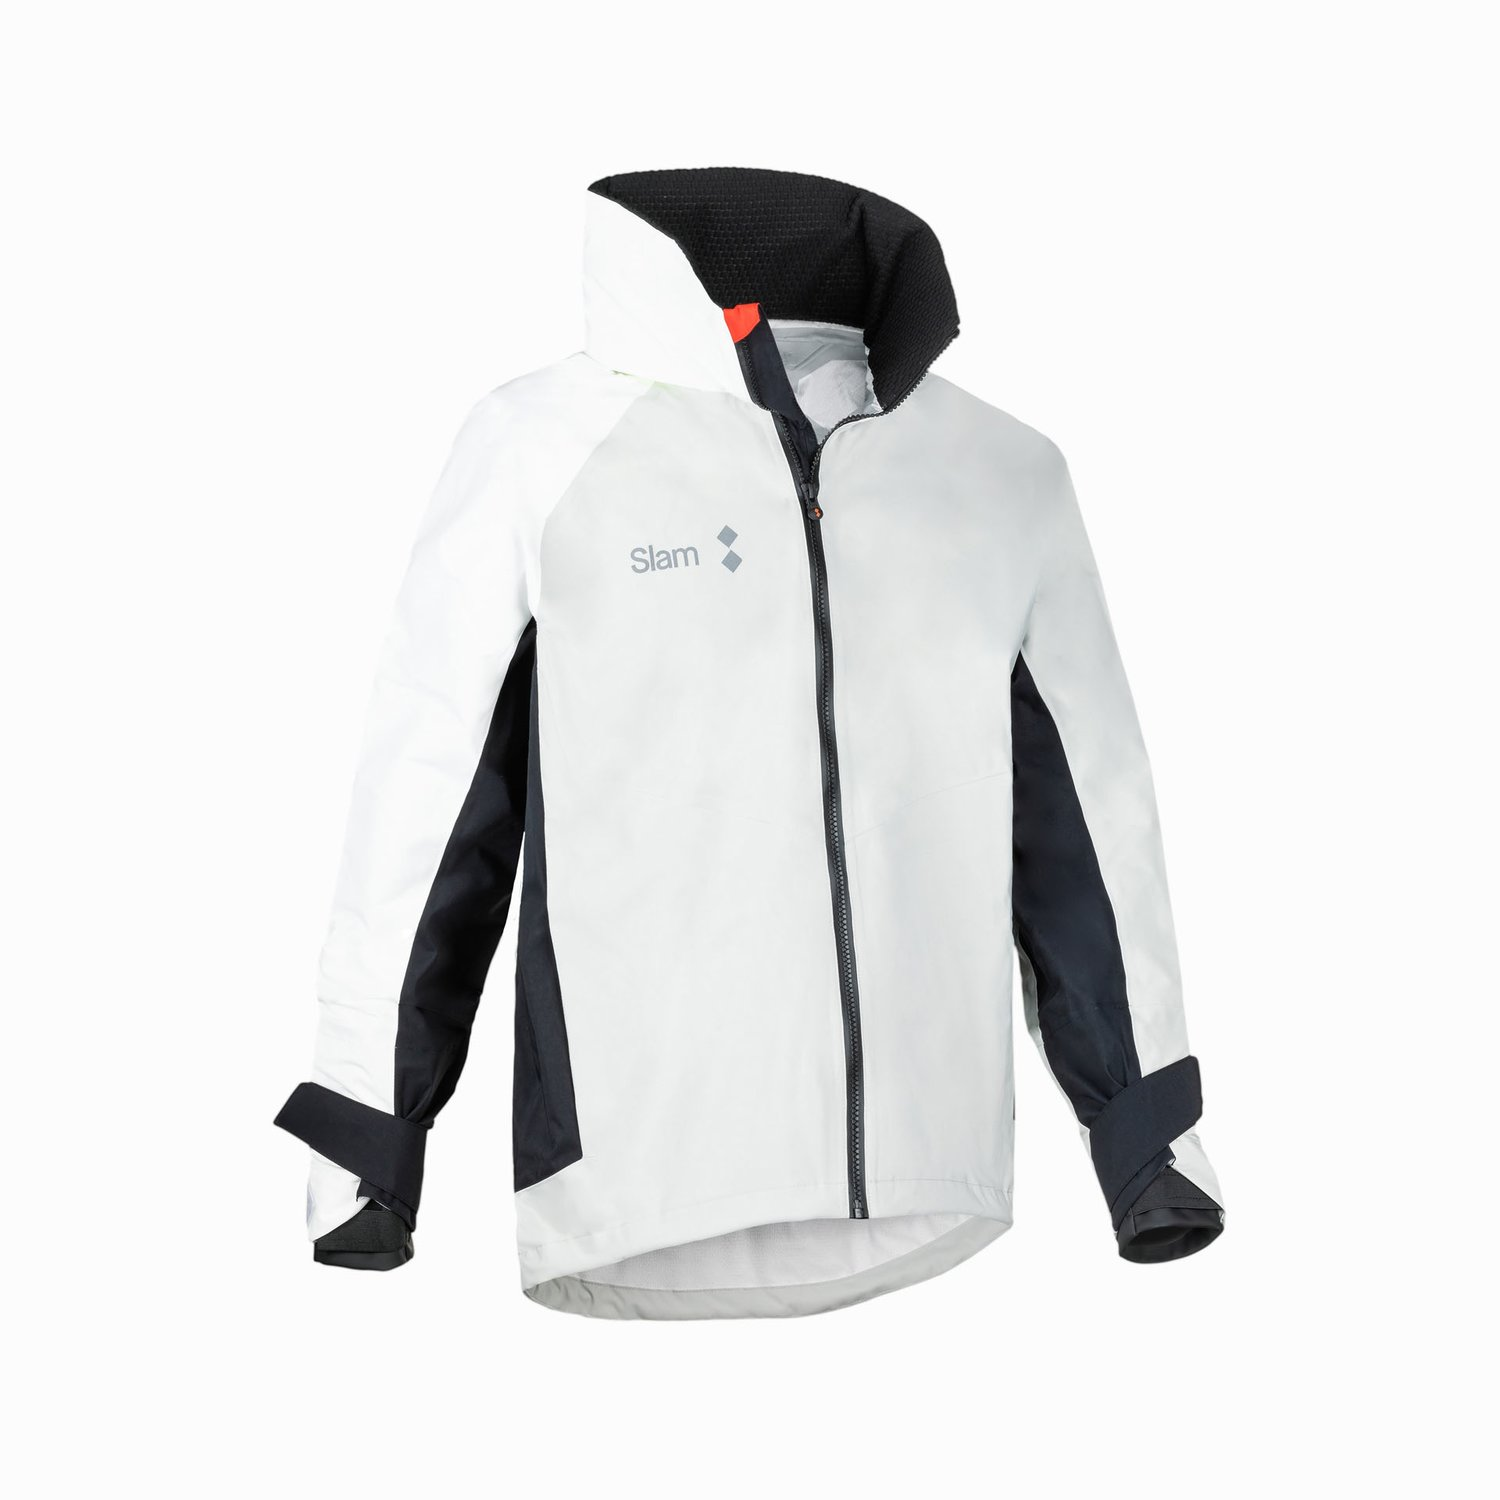 WIN-D 3 COASTAL JACKET - Grey / White / Black